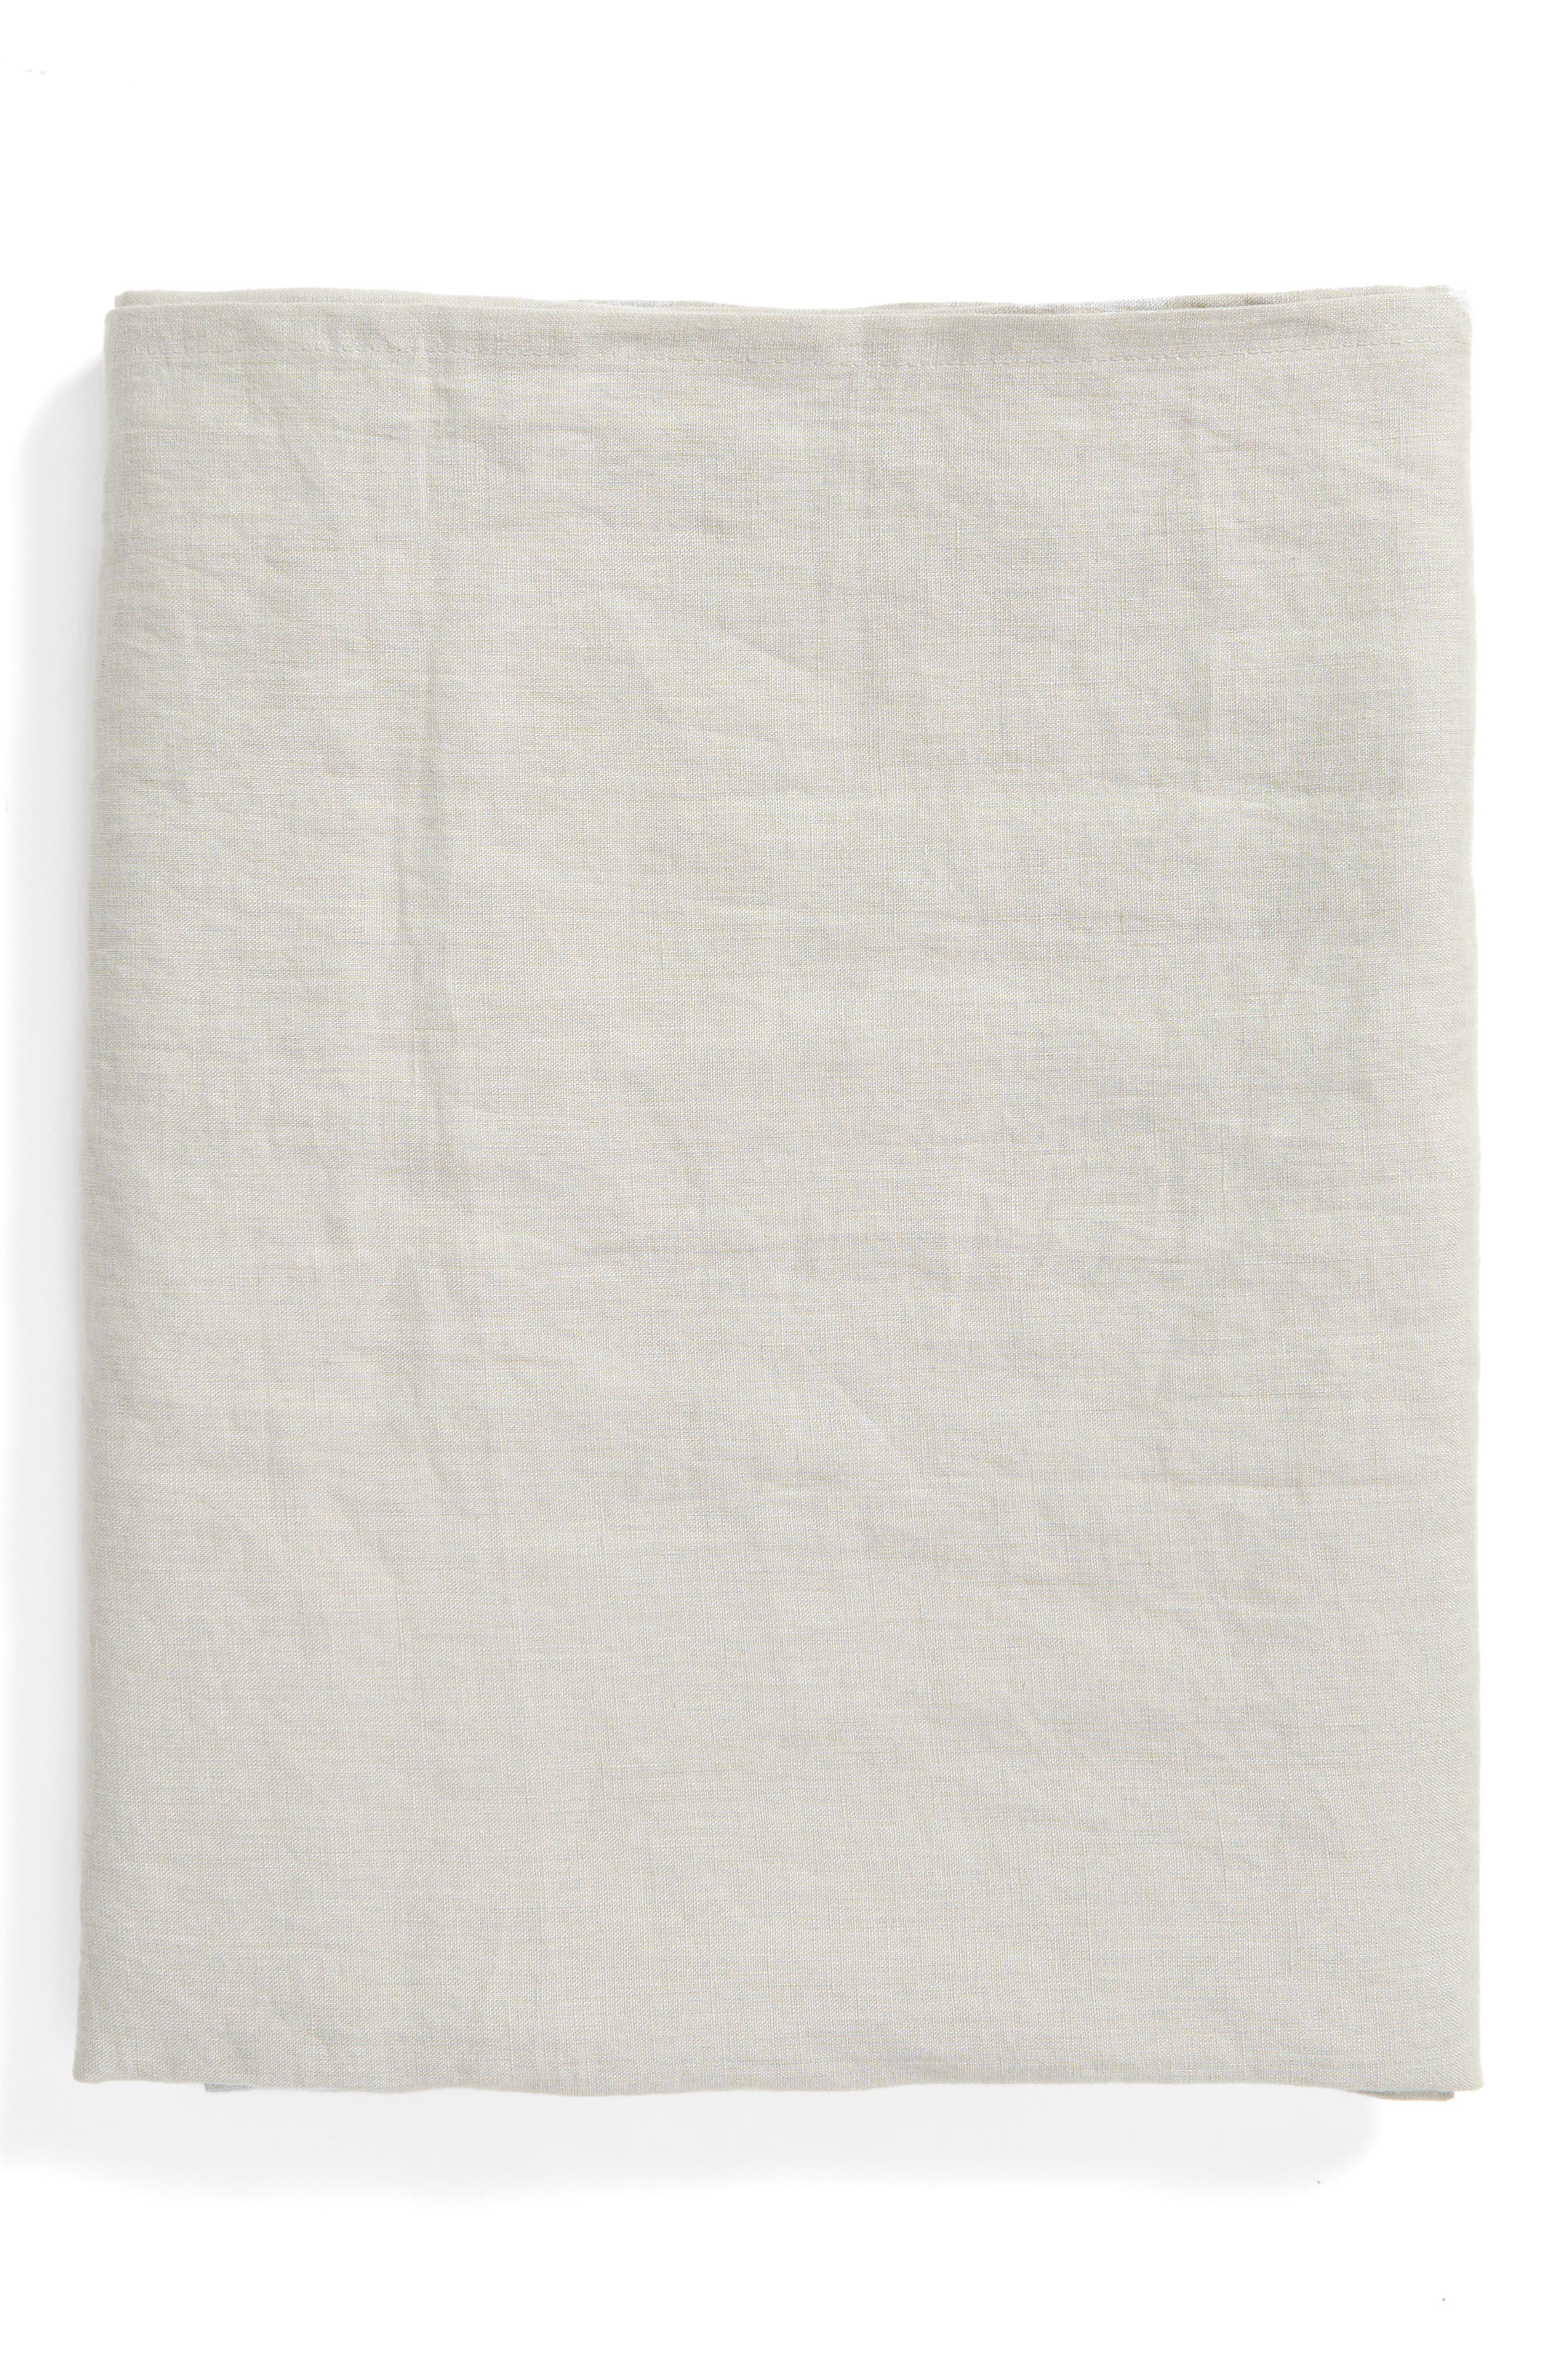 Washed Linen Tablecloth,                         Main,                         color, Grey